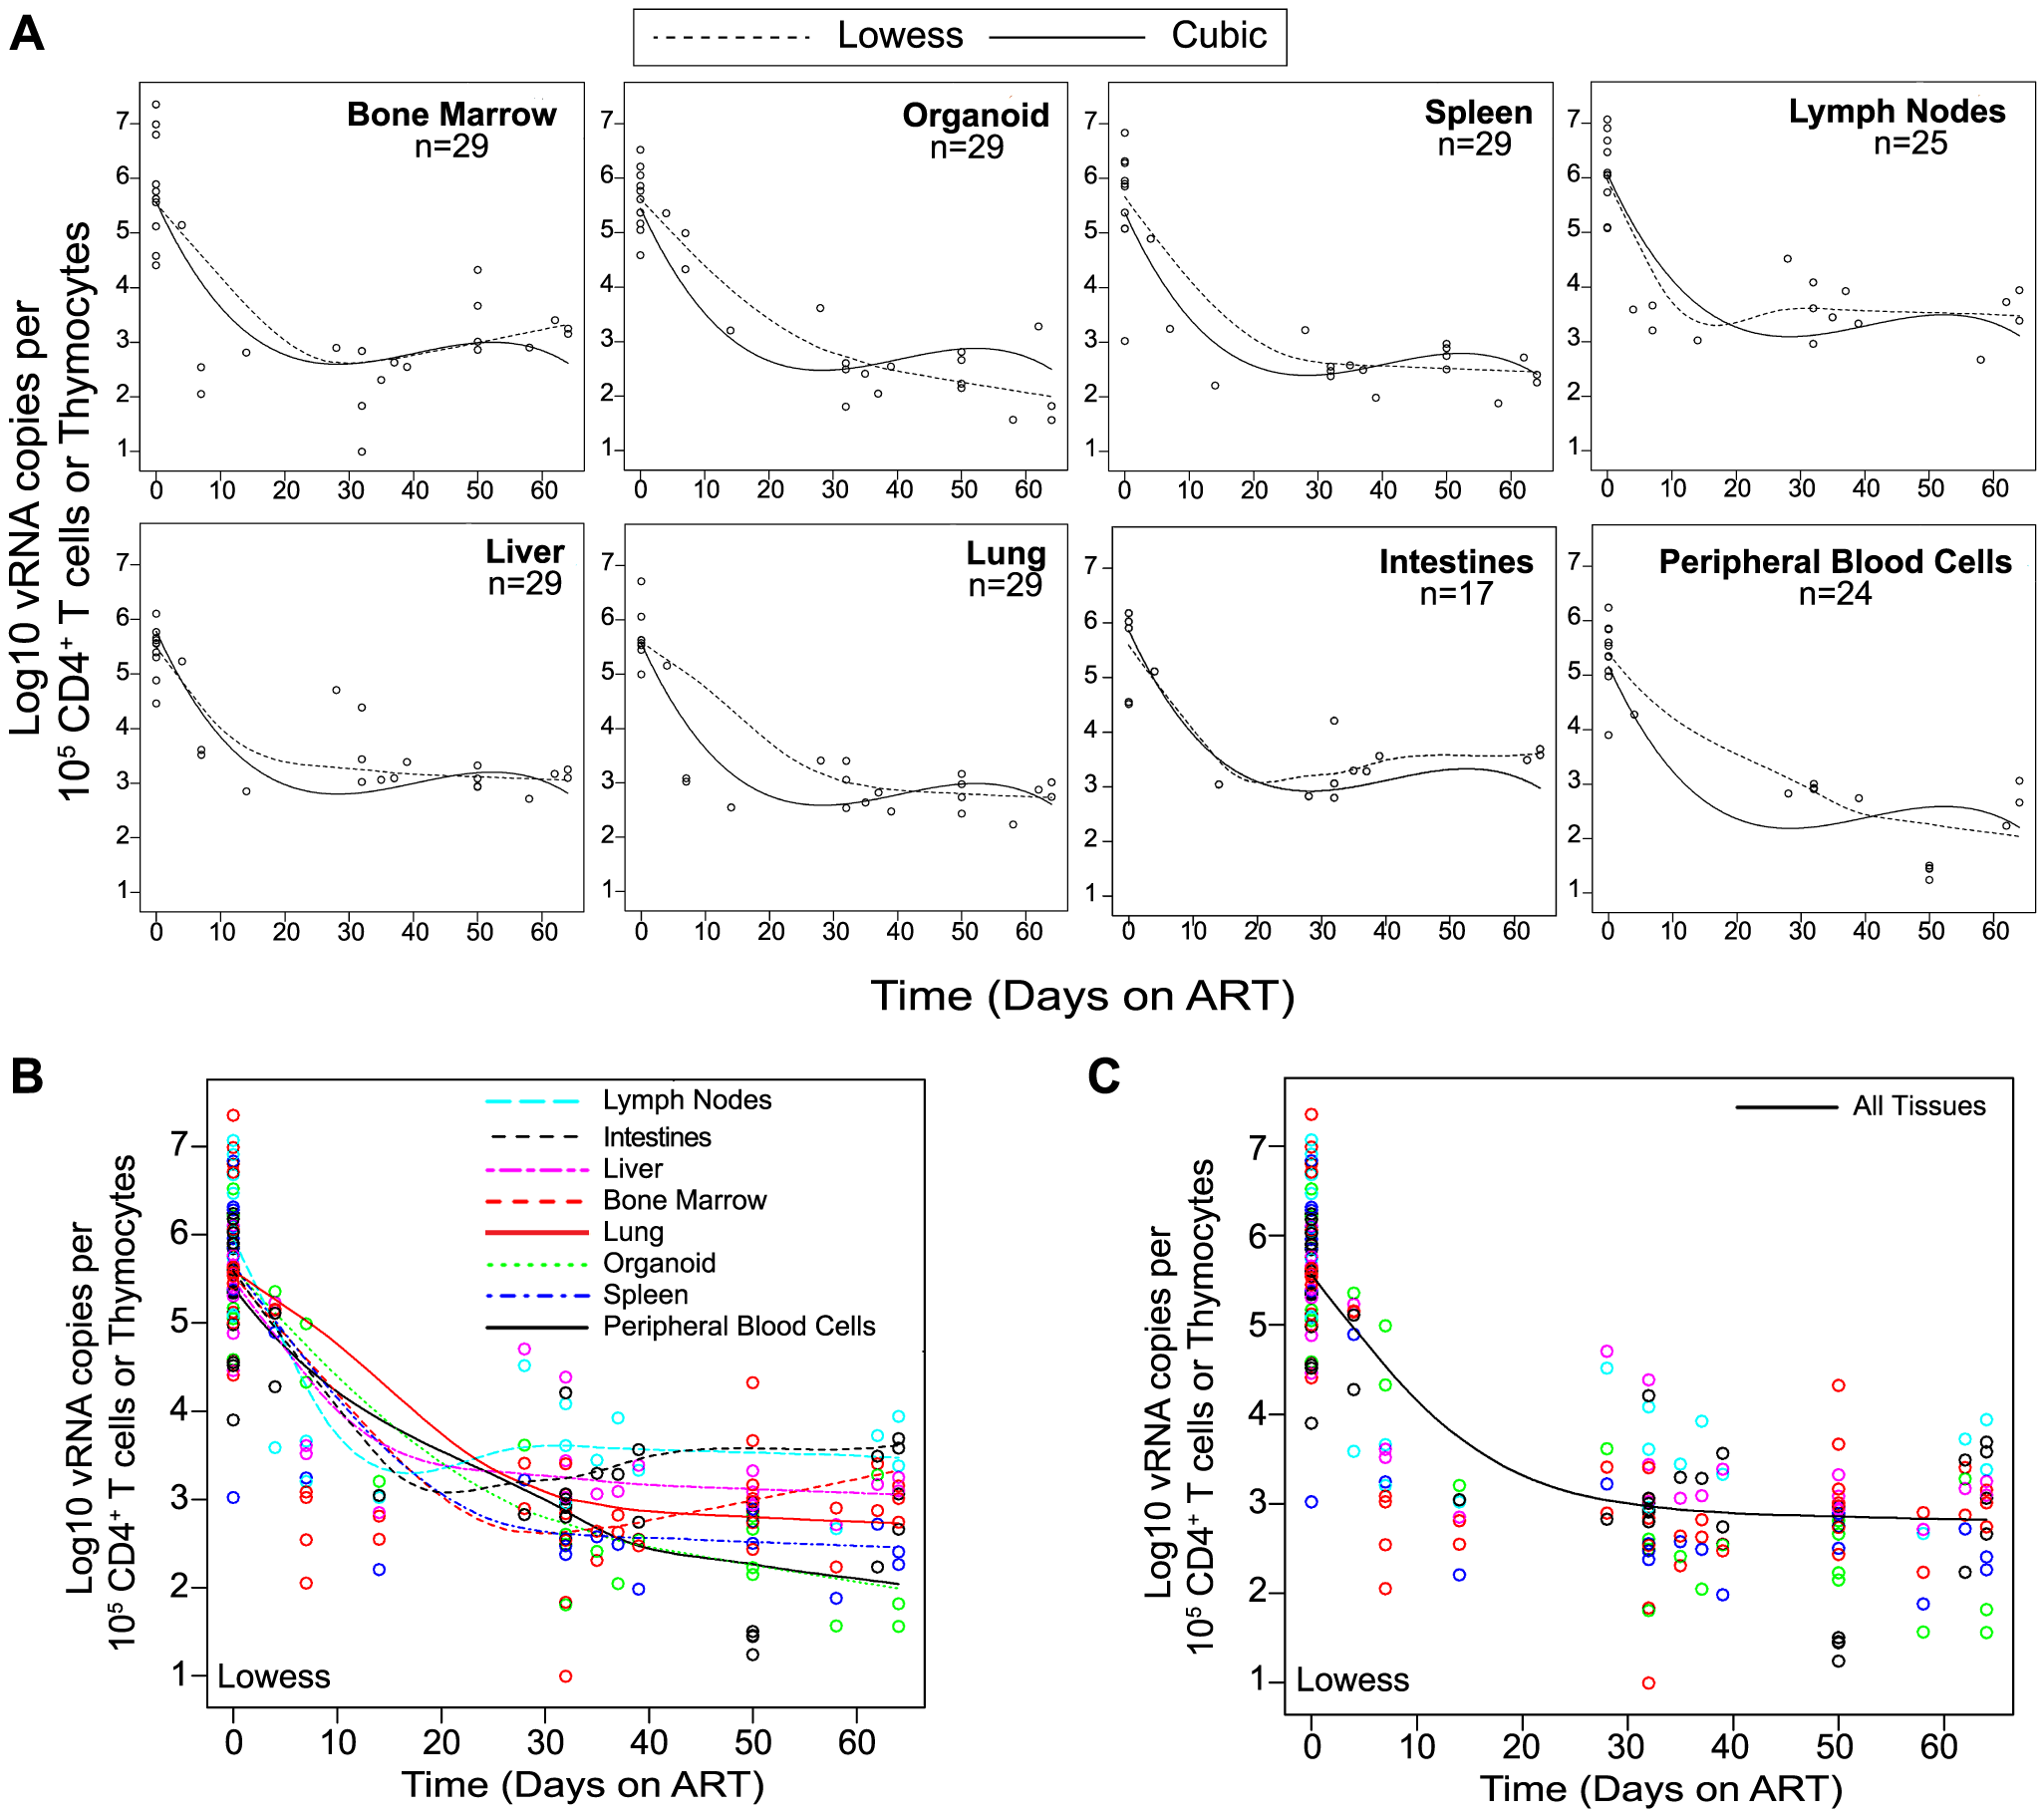 Viral RNA production during ART rapidly declines and then enters a plateau phase in all tissues.